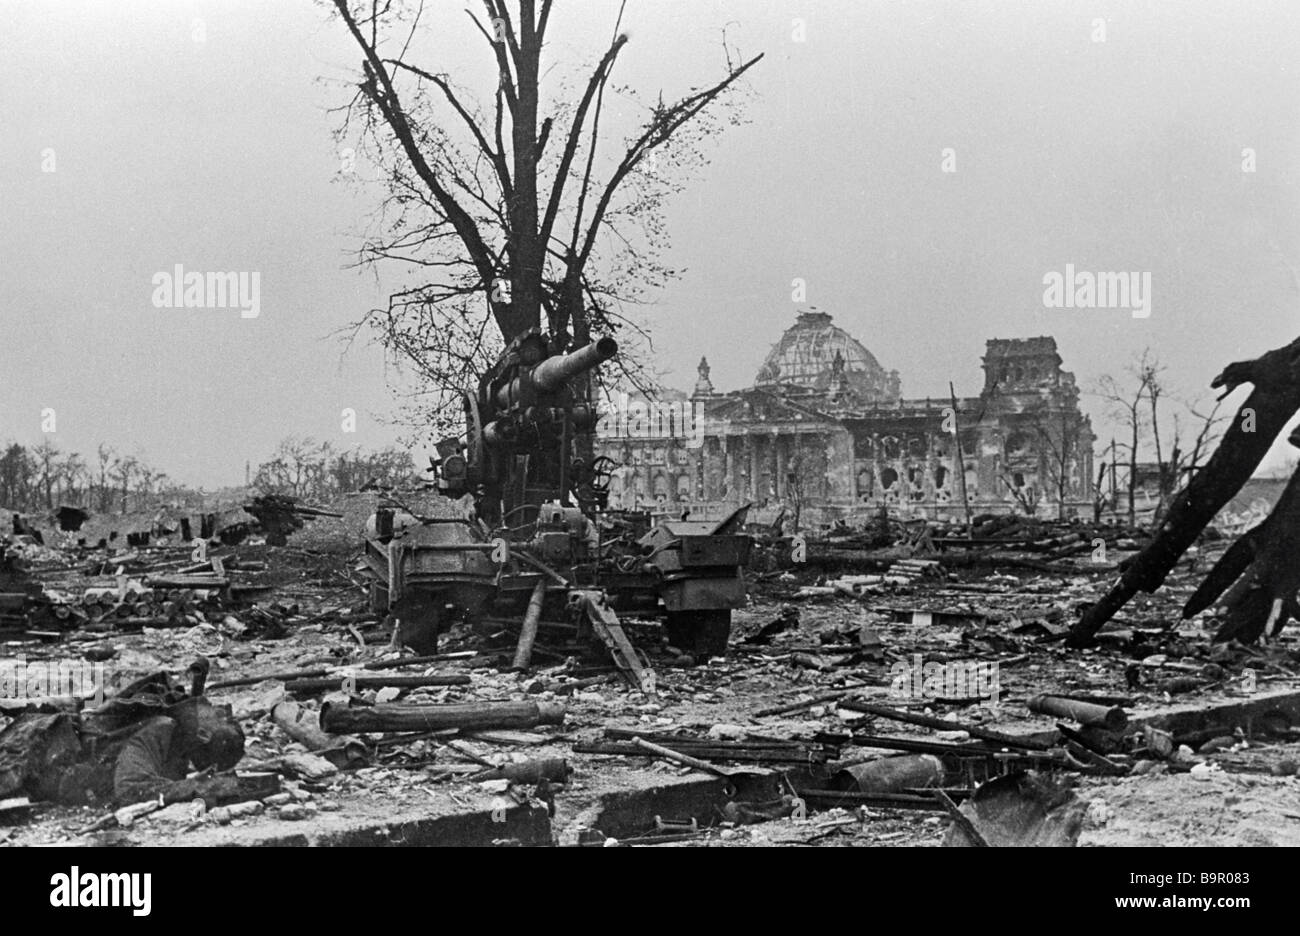 An artillery gun and a killed soldier against the background of the destroyed Reichstag and dead trees - Stock Image